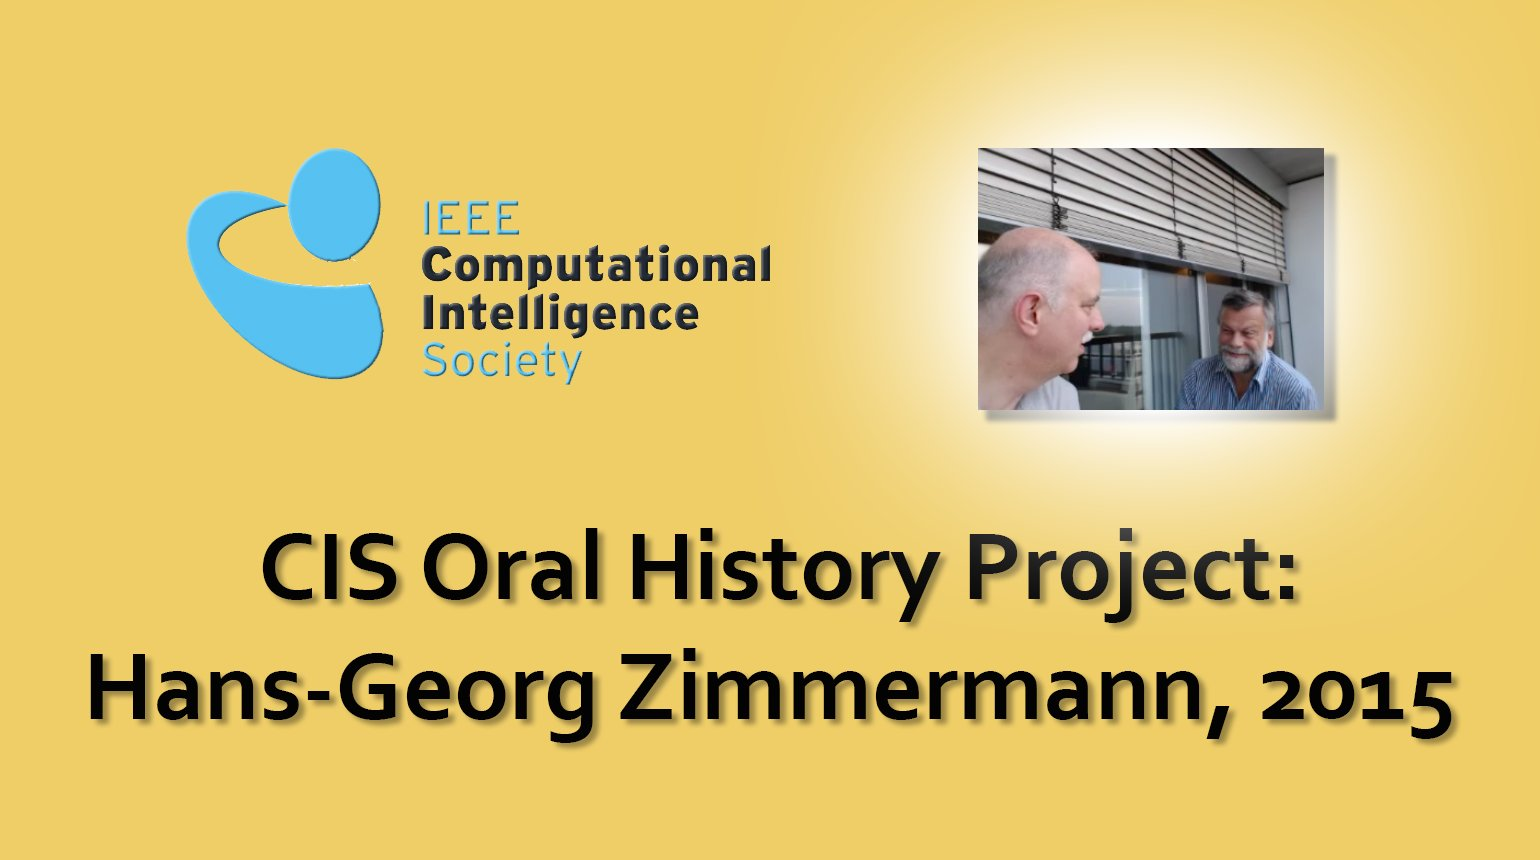 Interview with Hans-Georg Zimmermann, 2015: CIS Oral History Project